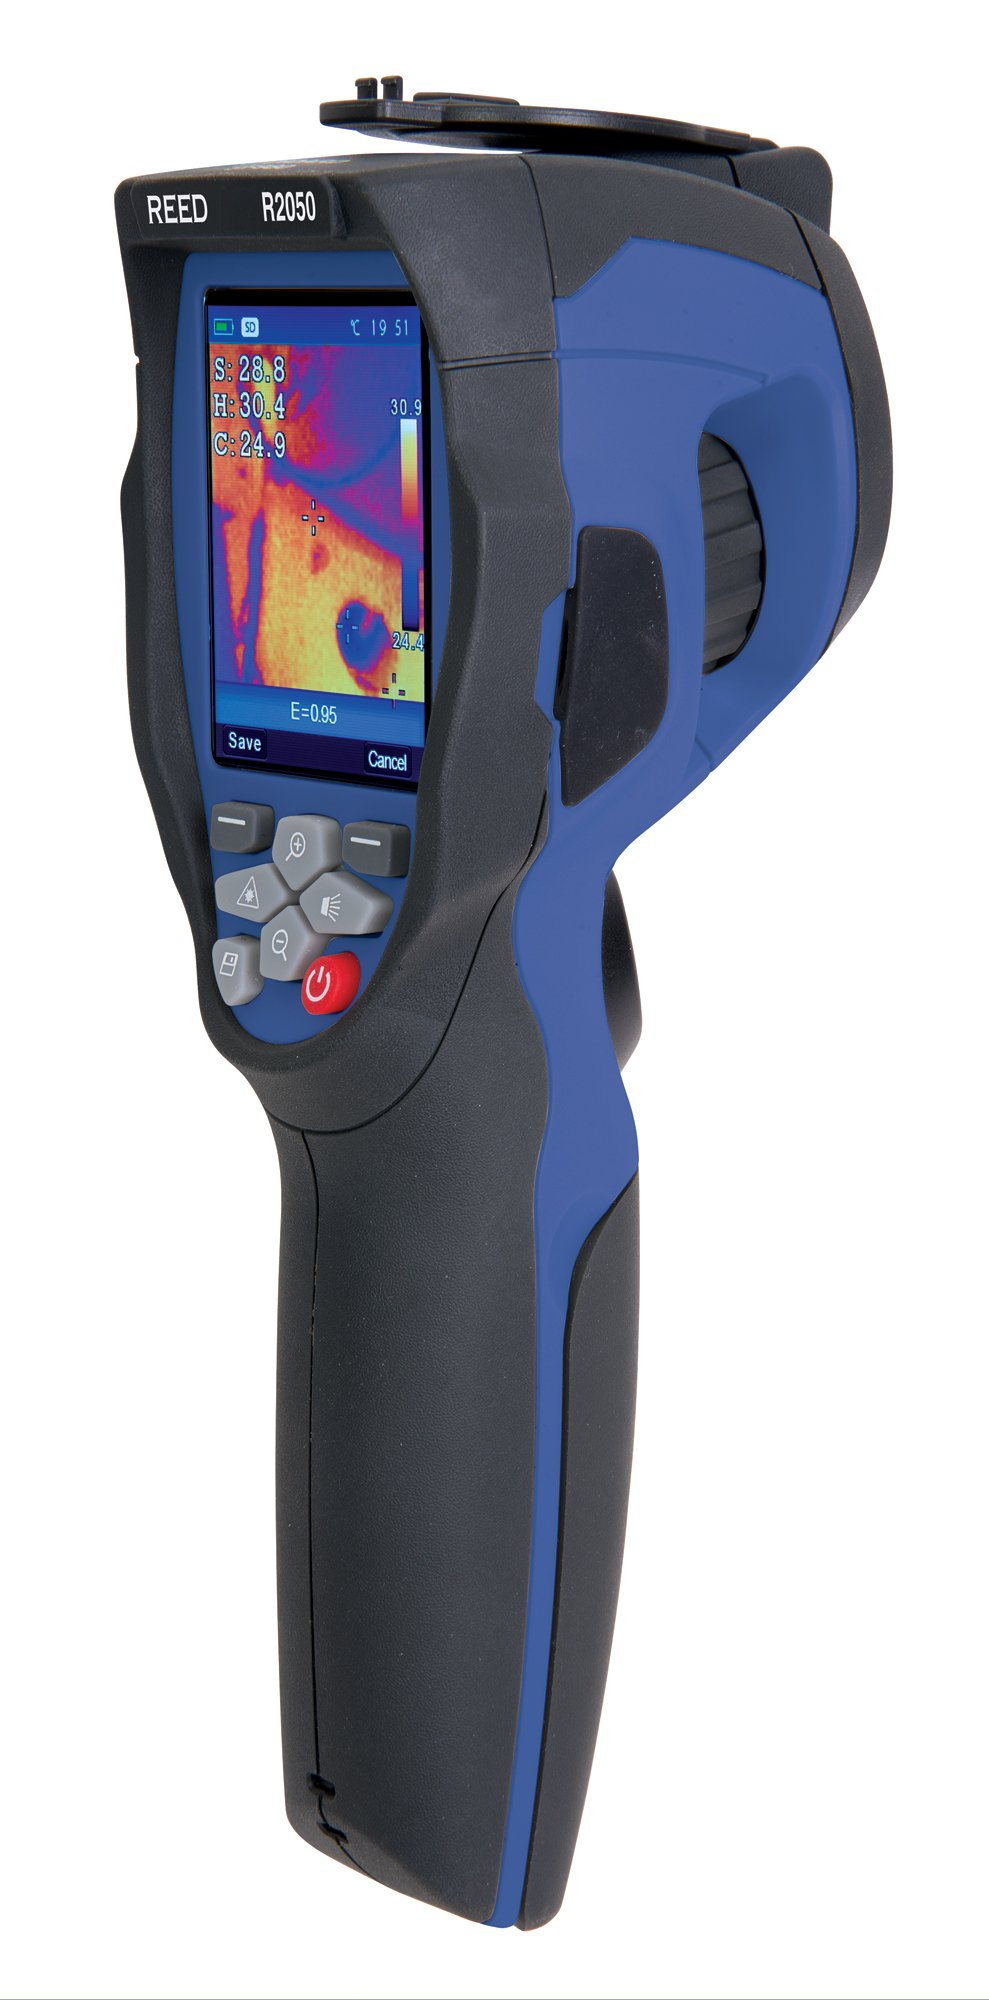 REED Instruments R2050 Thermal Imaging Camera, 6400 Pixels (80 x 80)